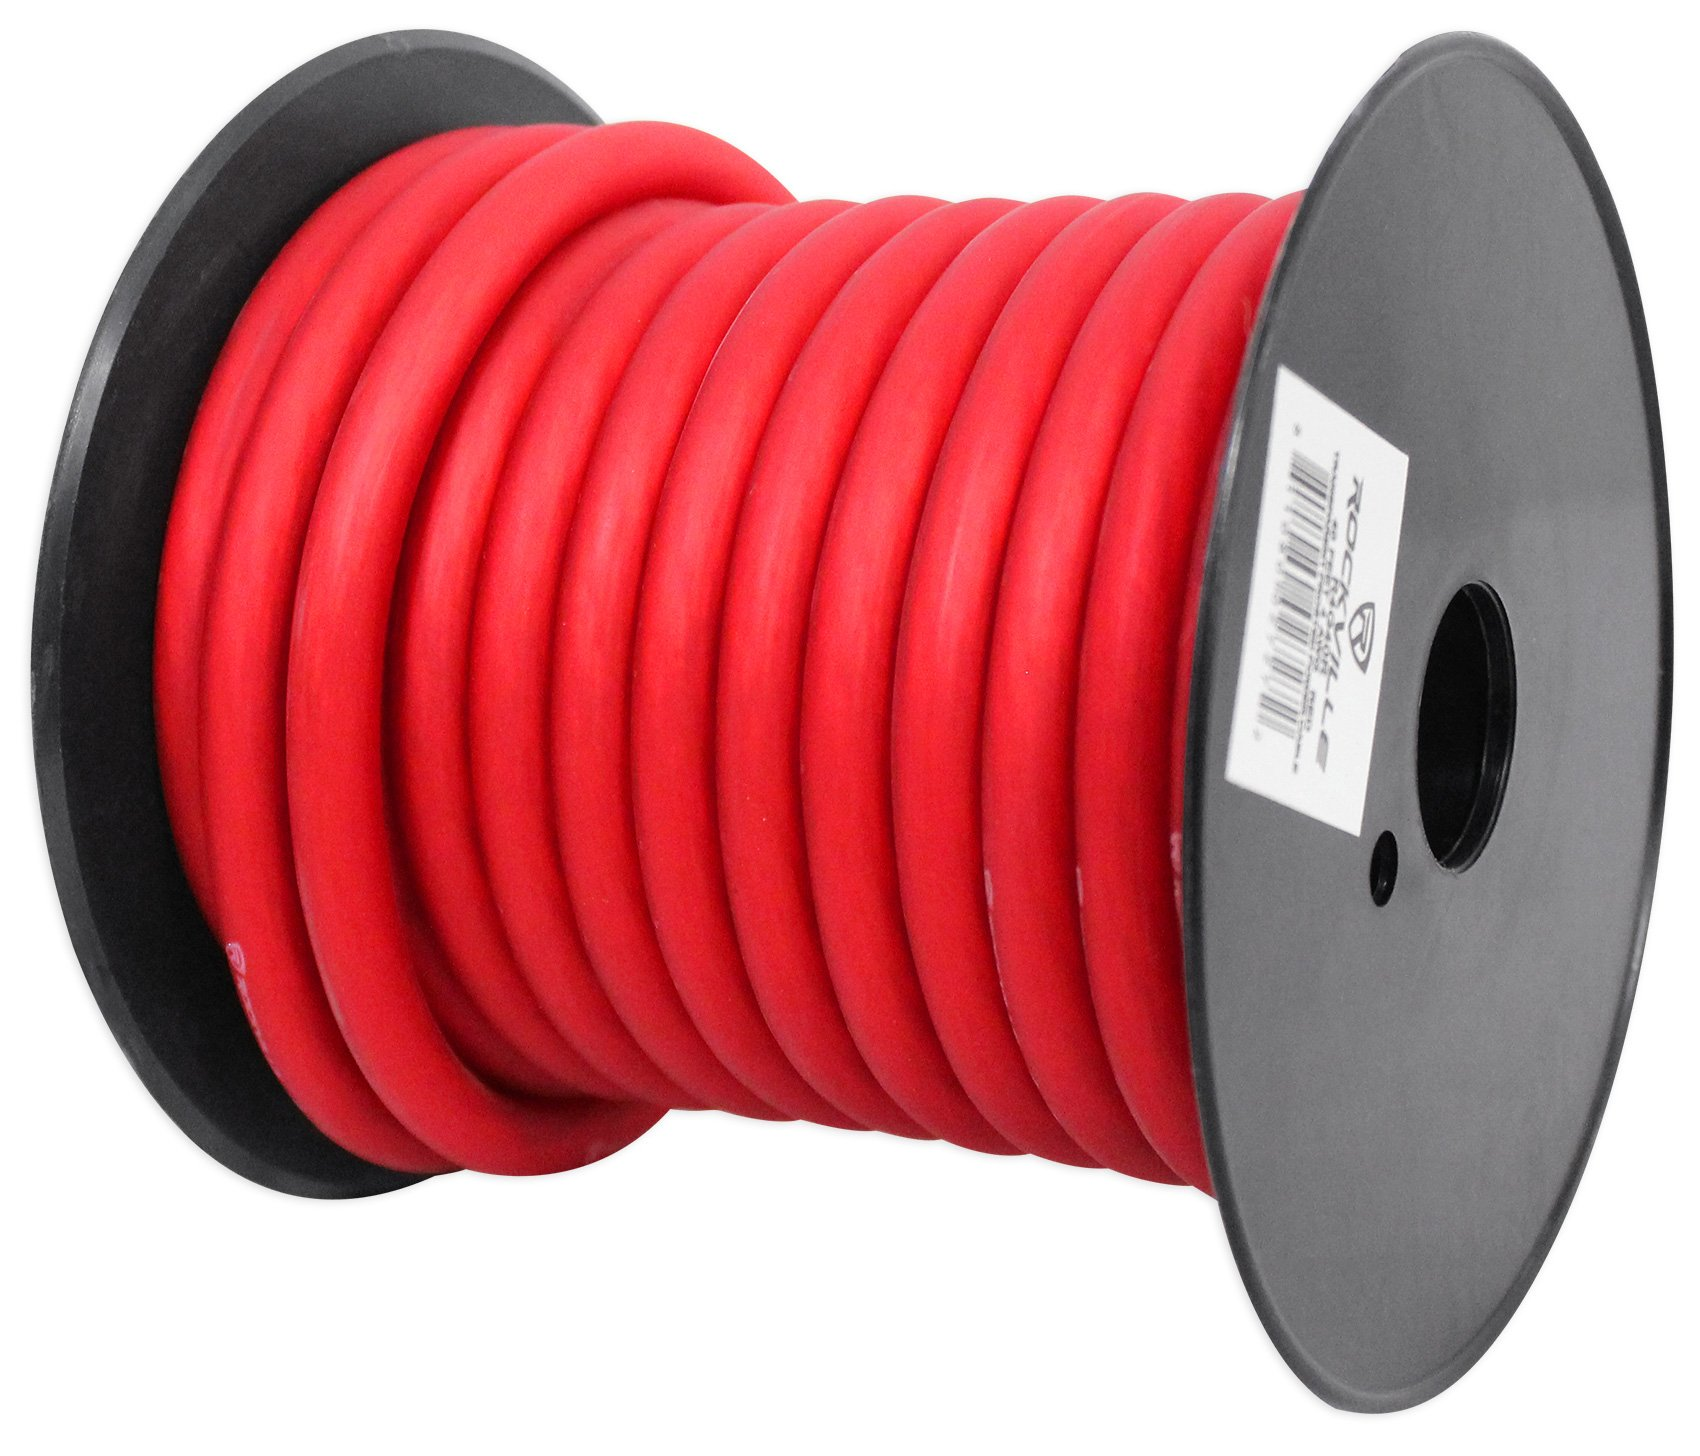 Rockville R4G40R Red 4 AWG Gauge 40 Foot Car Amp Power/Ground Wire Spool